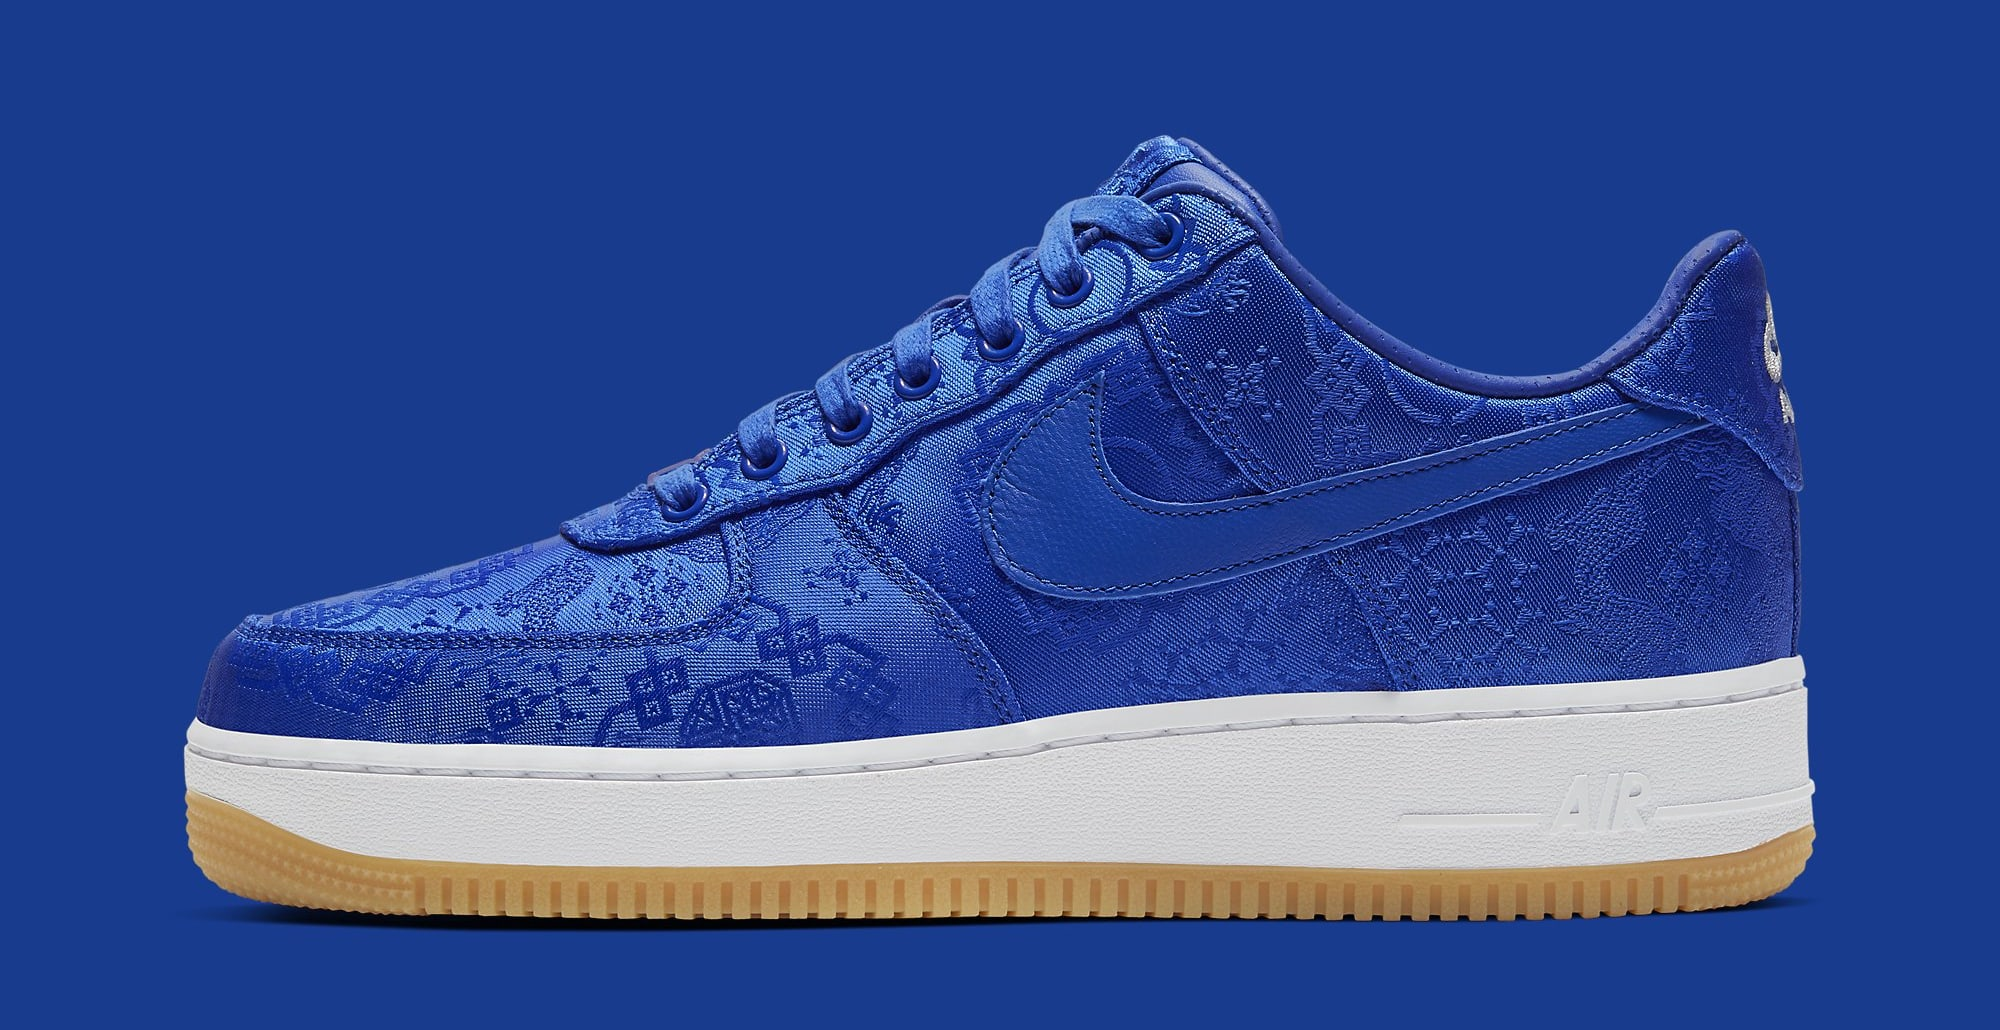 clot-nike-air-force-1-low-blue-cj5290-400-lateral